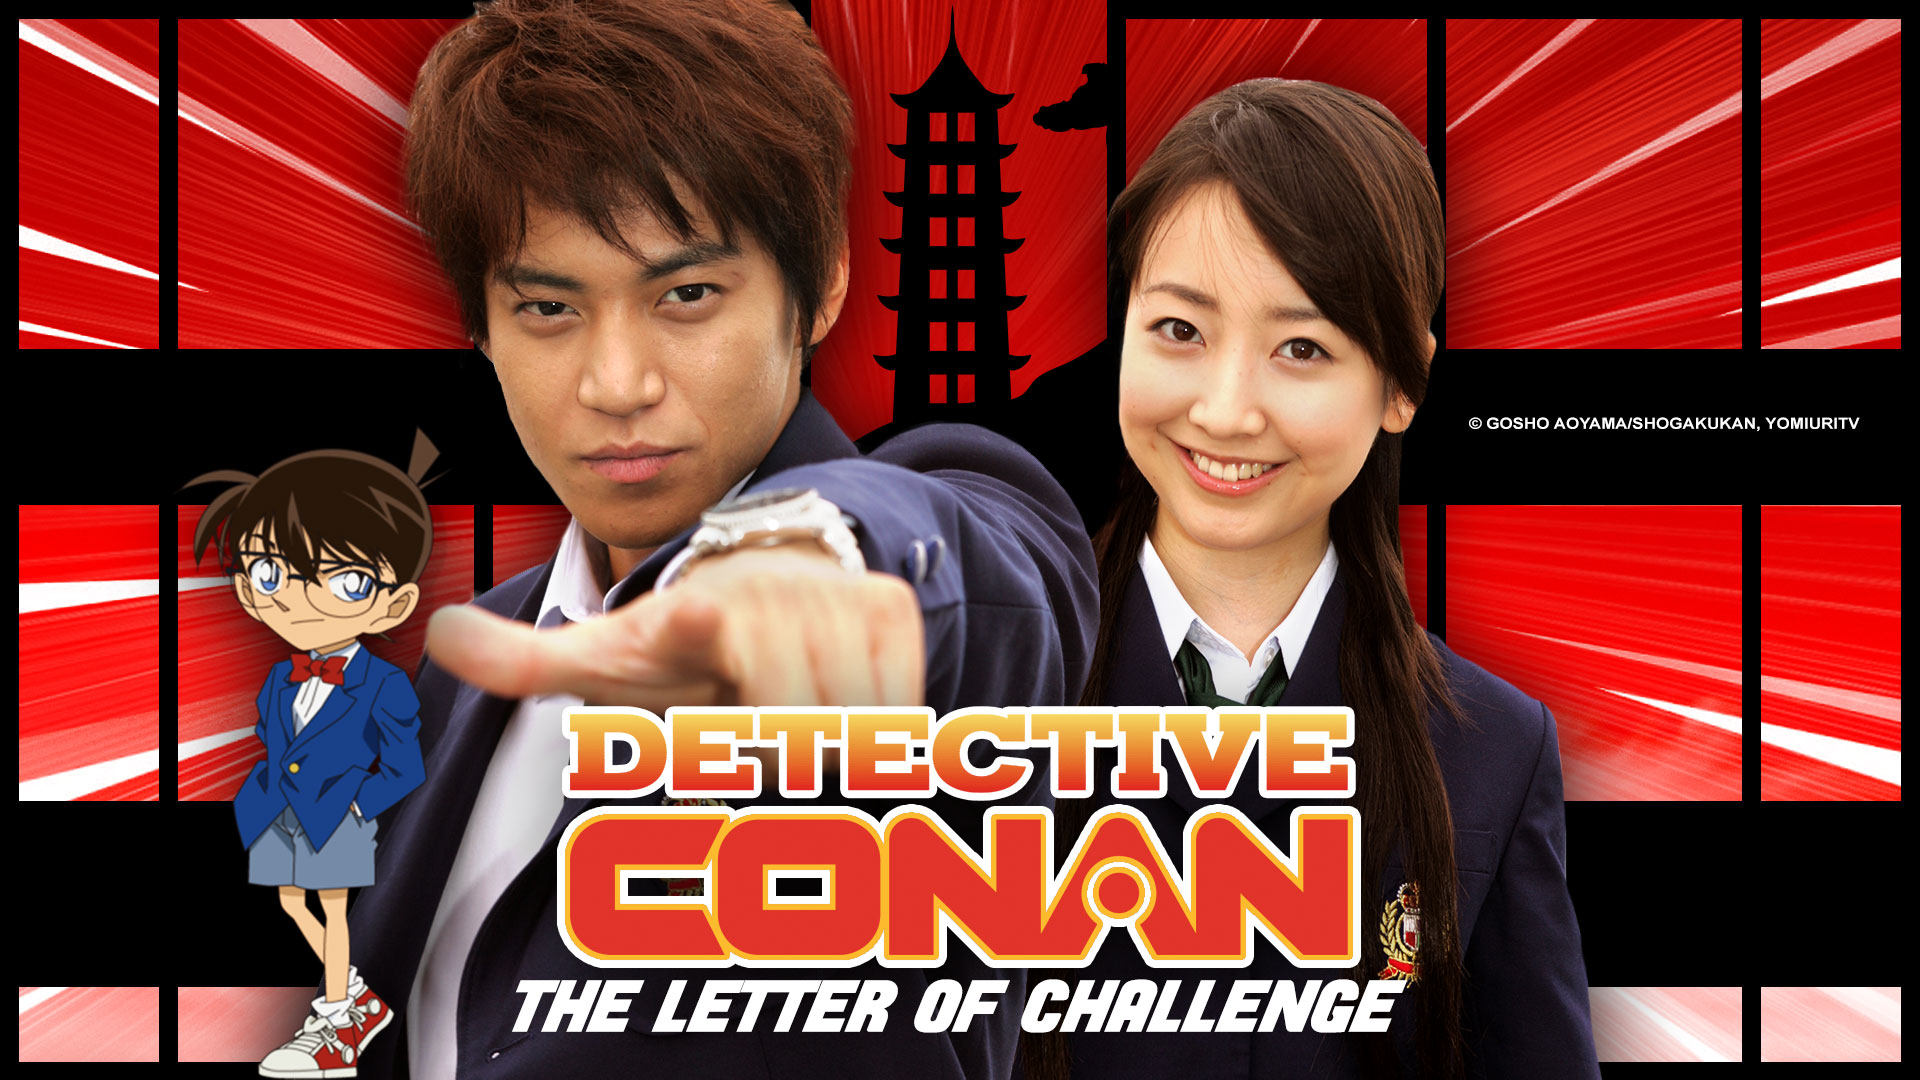 Detective Conan: The Letter of Challenge